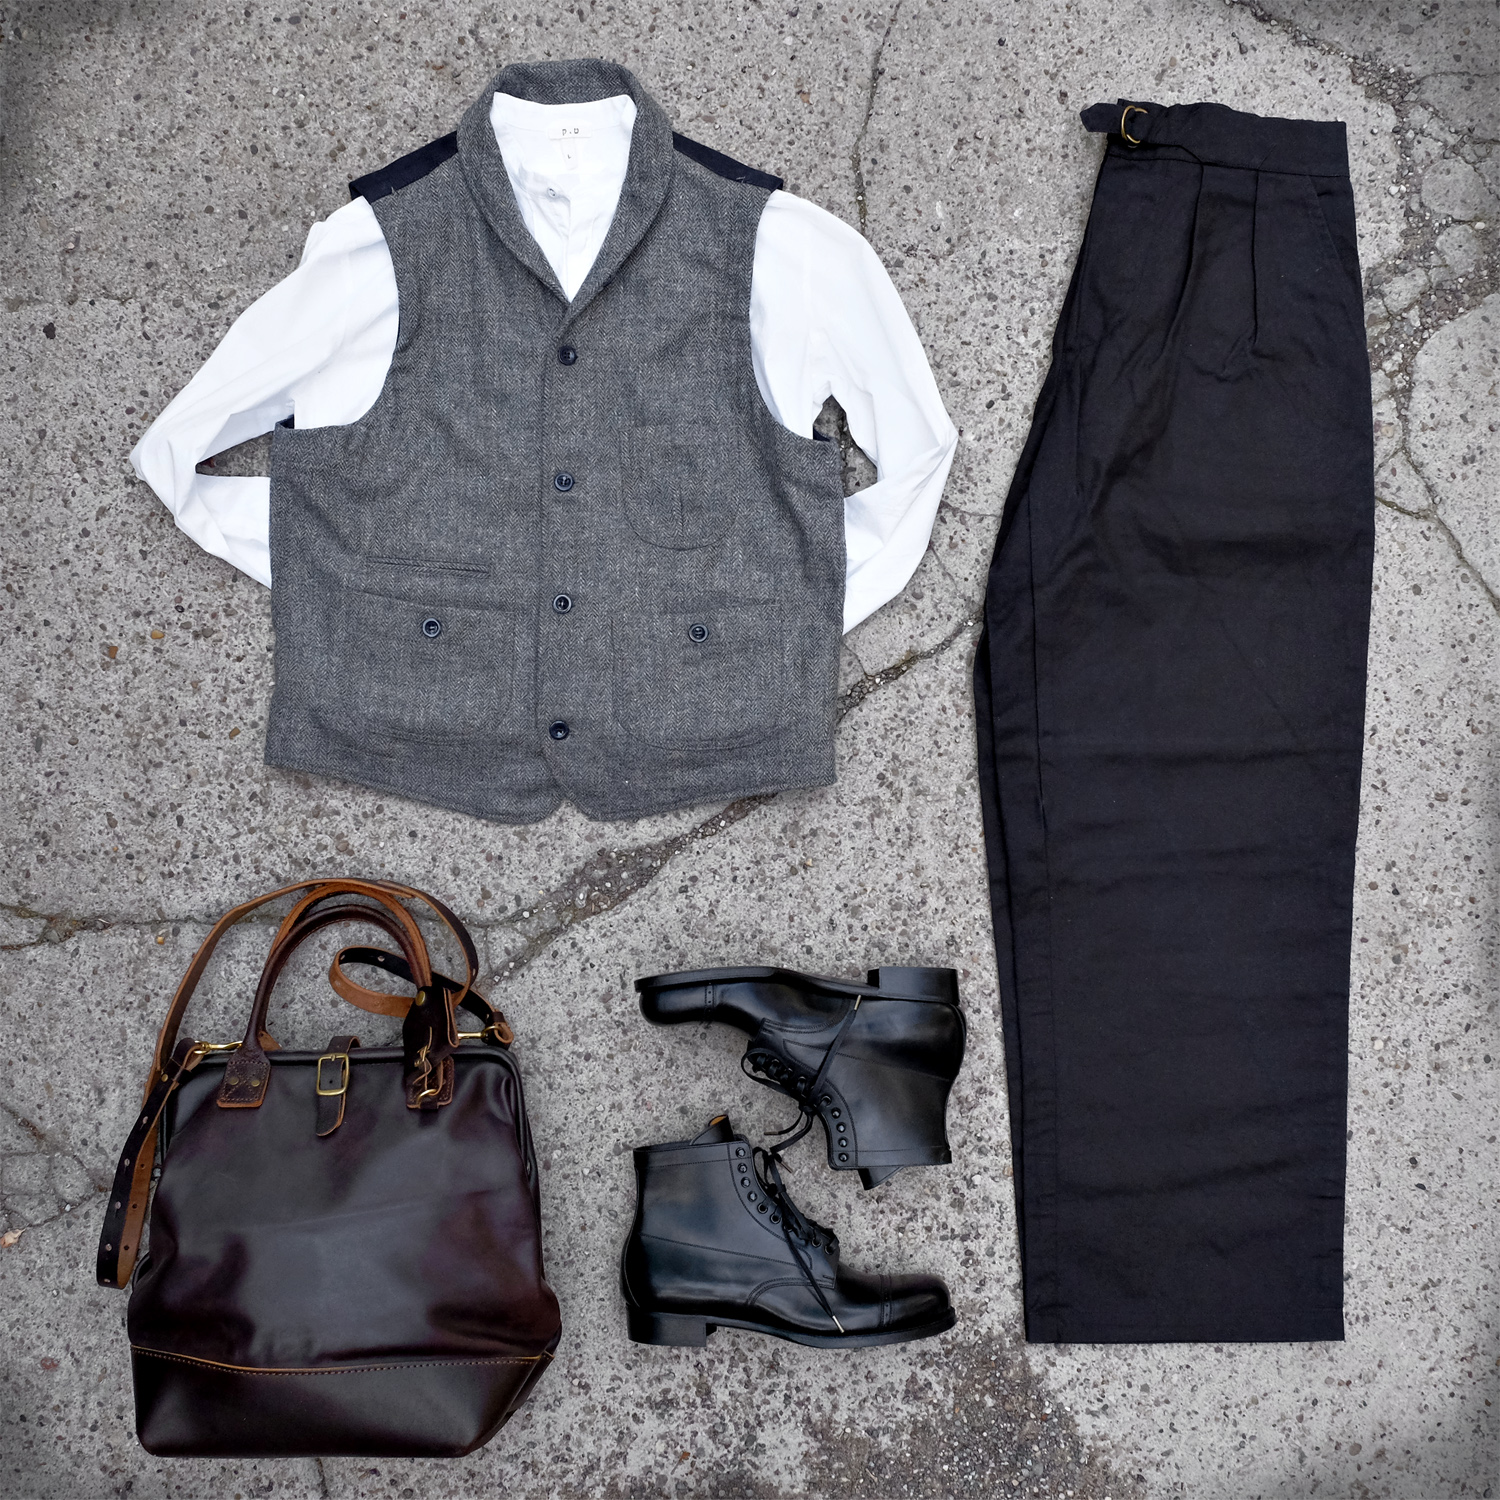 outfit-captainsantors-weste-wolle-kushnir-pants-blacksign-stiefel-billykirk-tasche